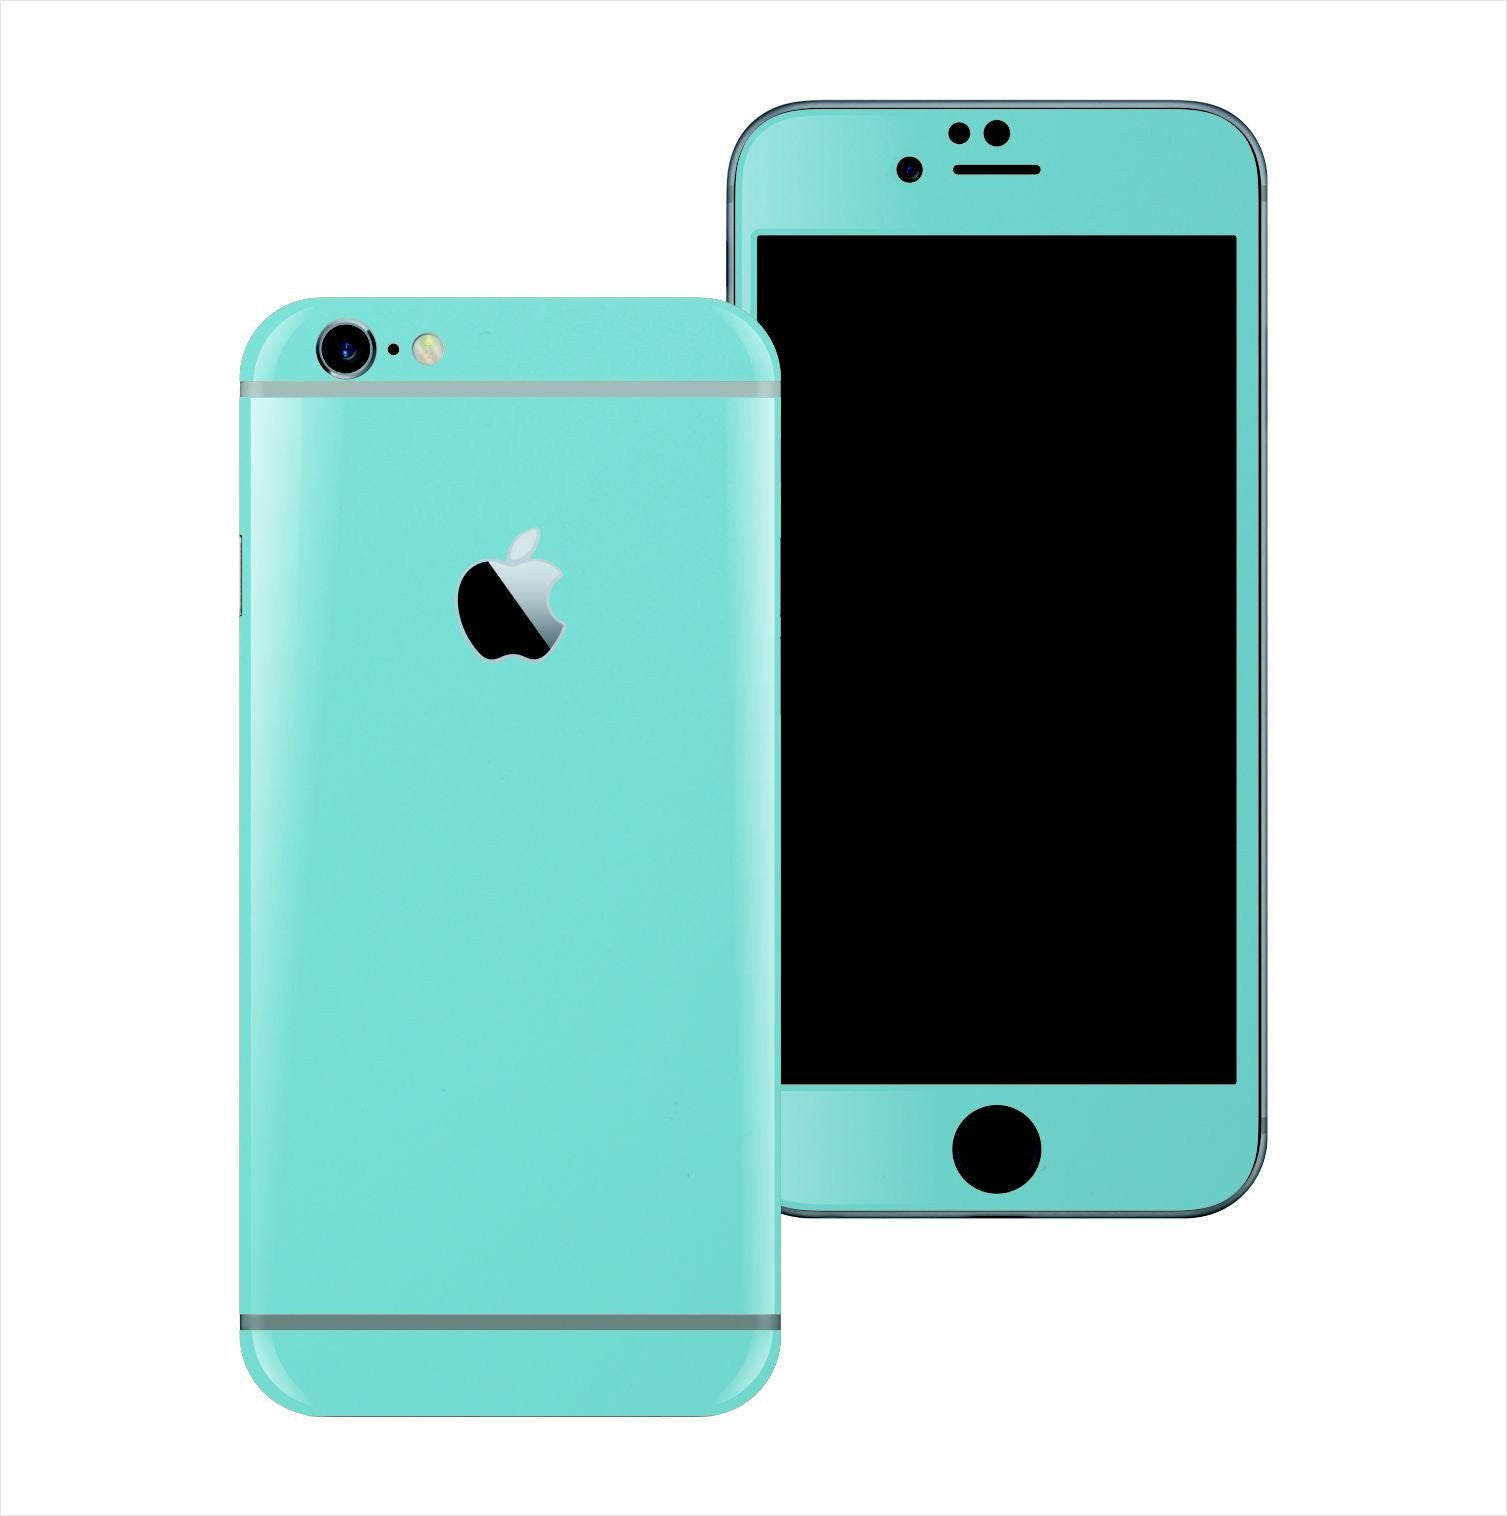 iPhone 6S PLUS Mint Matt Matte Skin Wrap Sticker Cover Protector Decal by EasySkinz